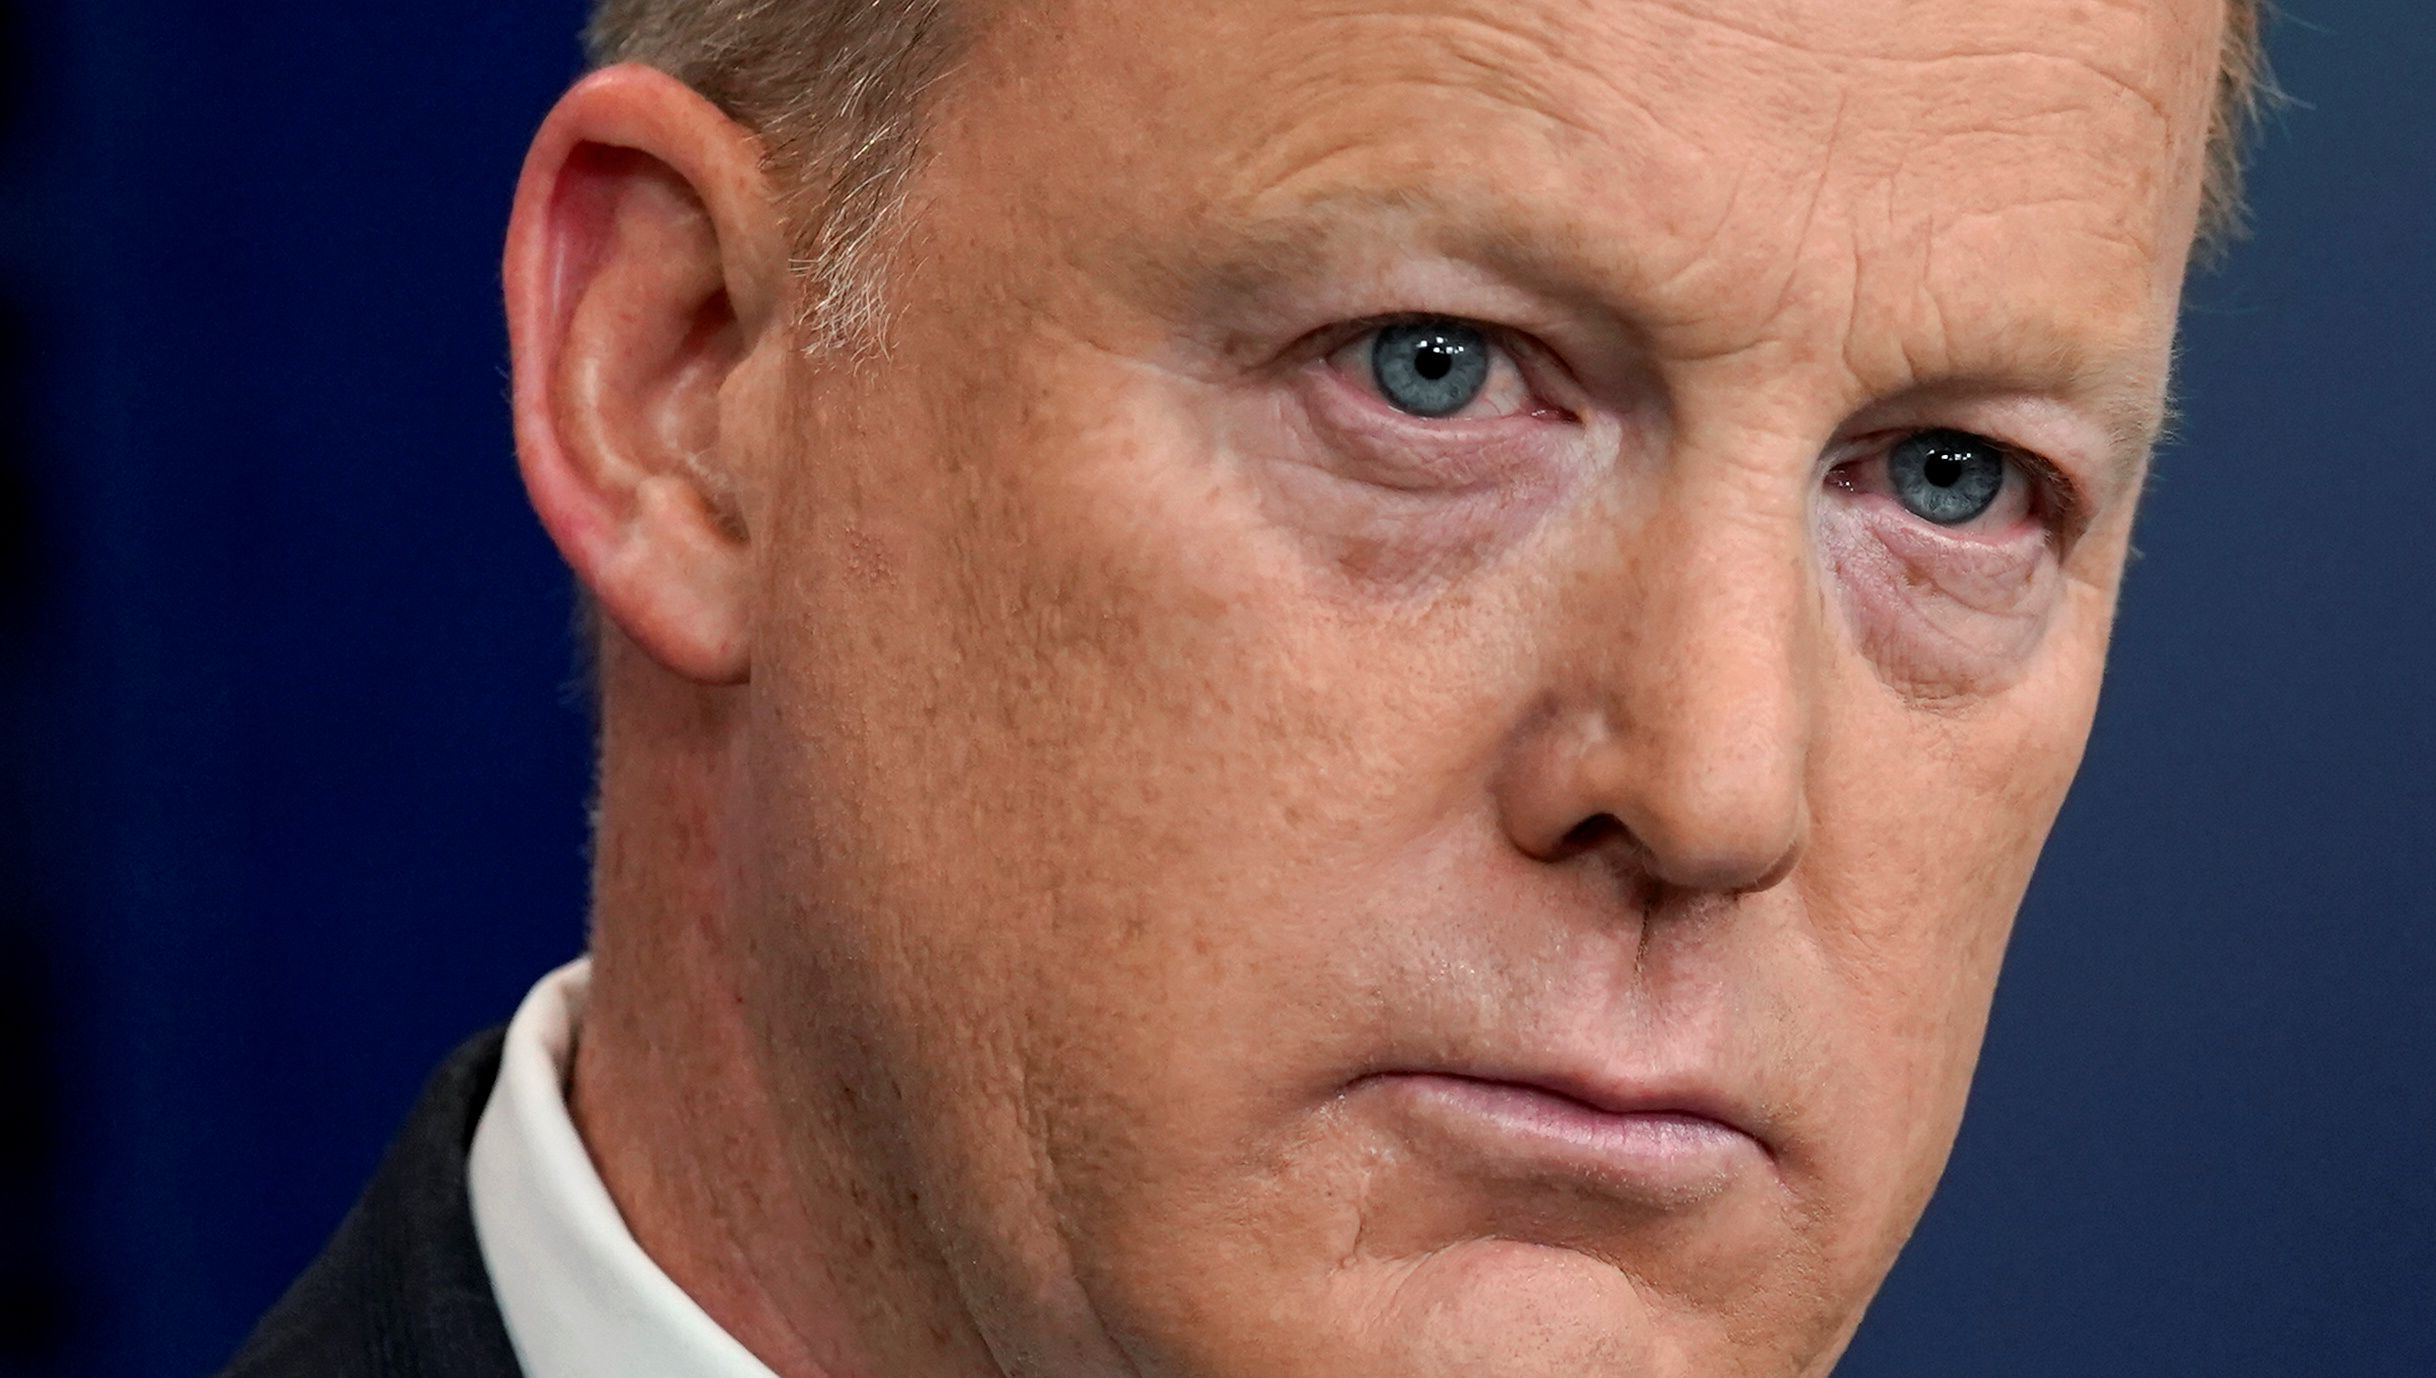 Sean Spicer stole a mini fridge from Junior White House staffers